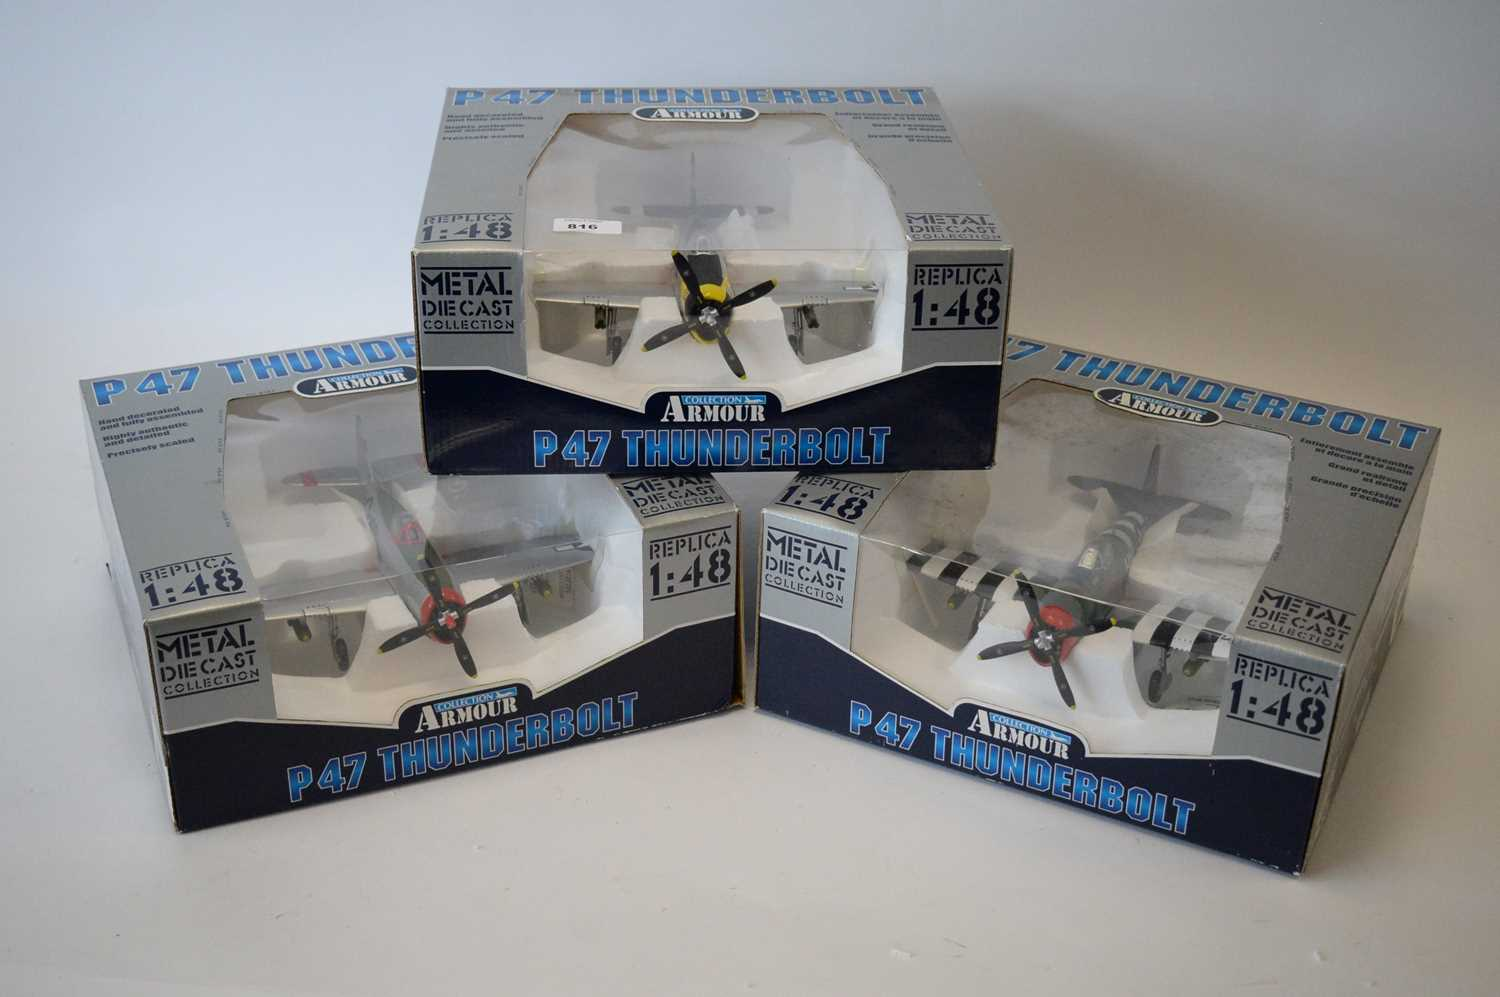 Lot 816 - Collection Armour 1:48 Scale metal diecast aeroplanes - P47 Thunderbolt.